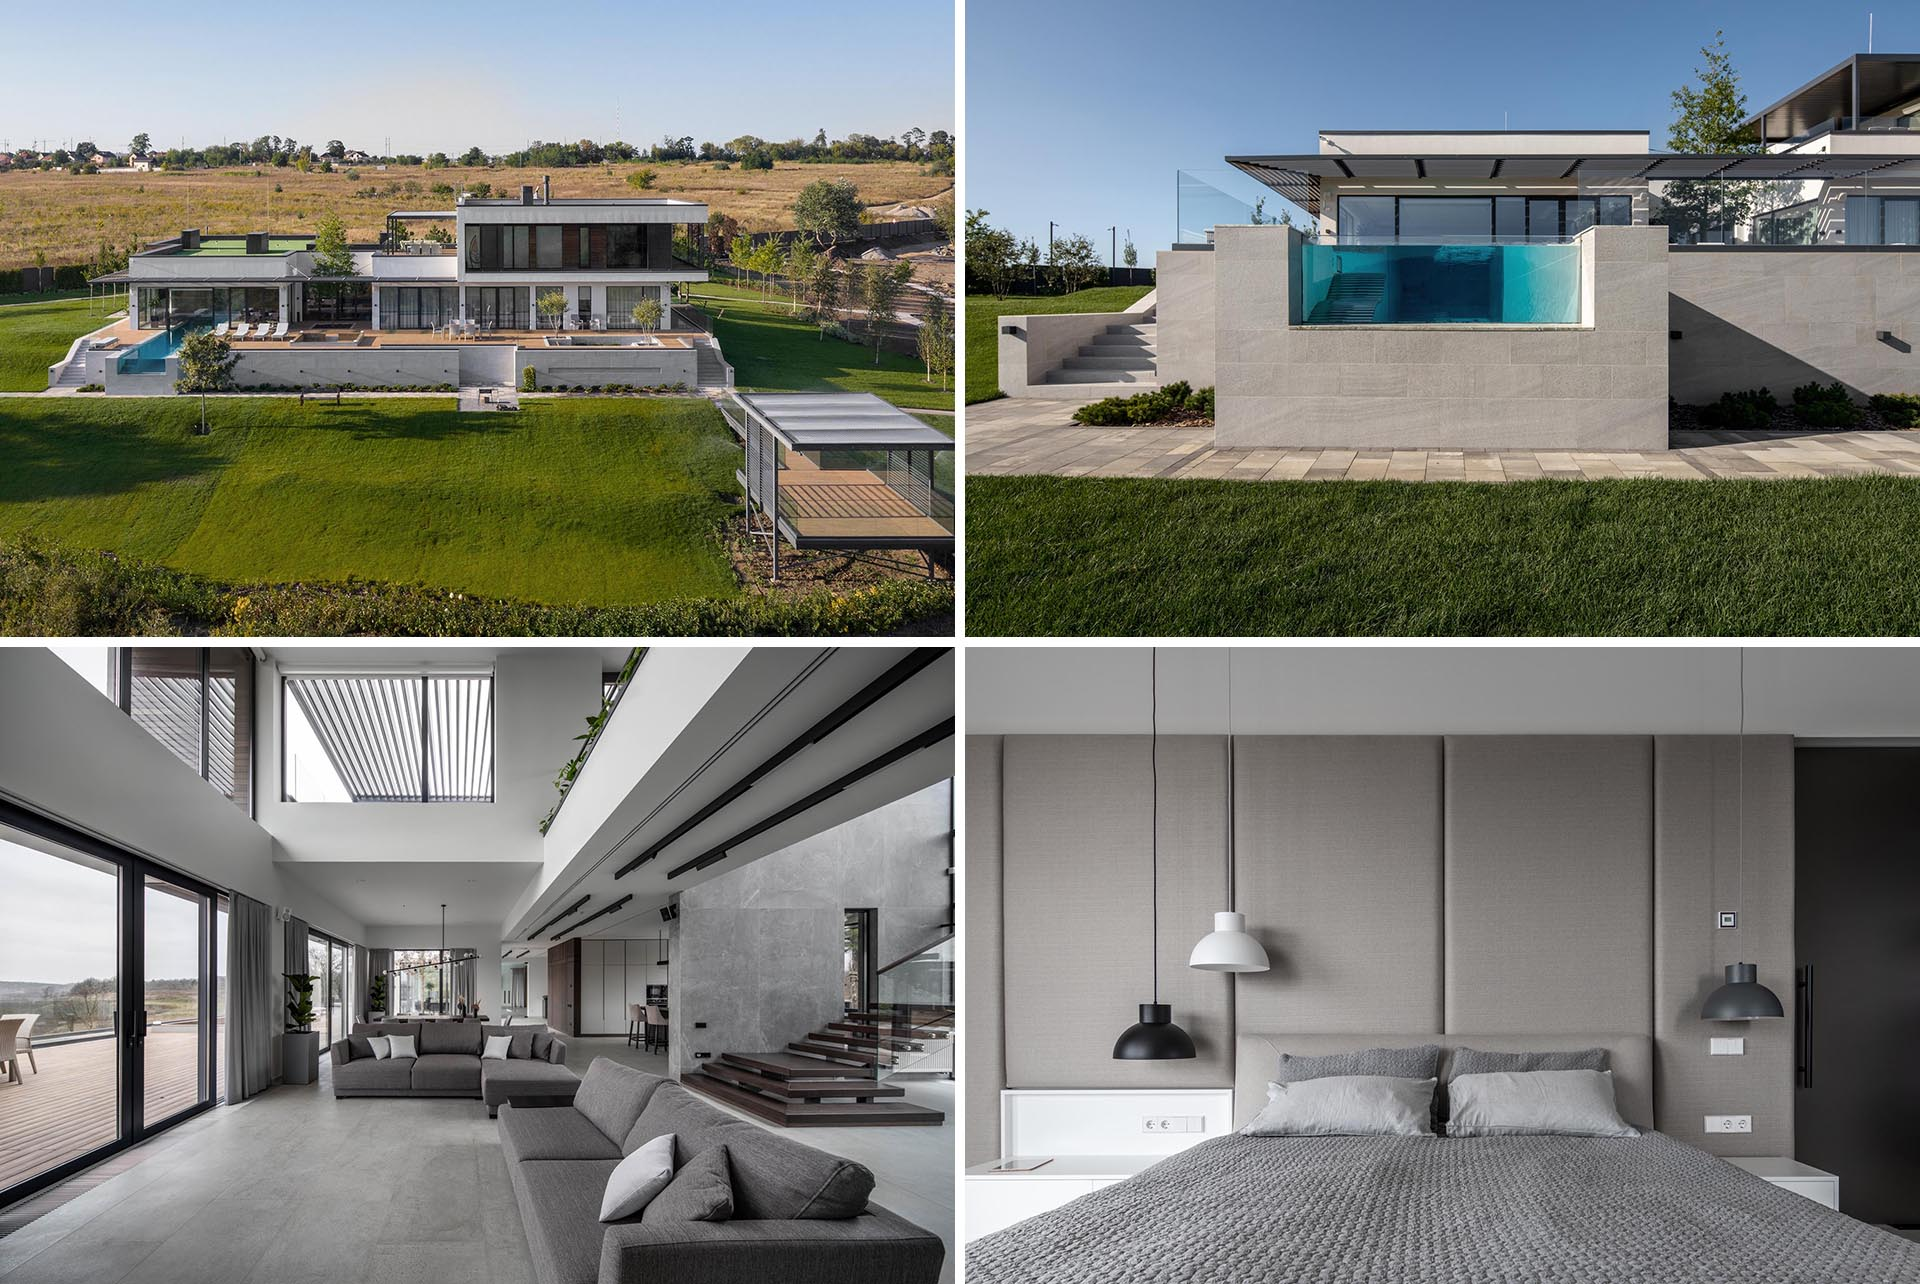 A modern home with see-through pool, a gray interior, and hotel-like bedrooms.